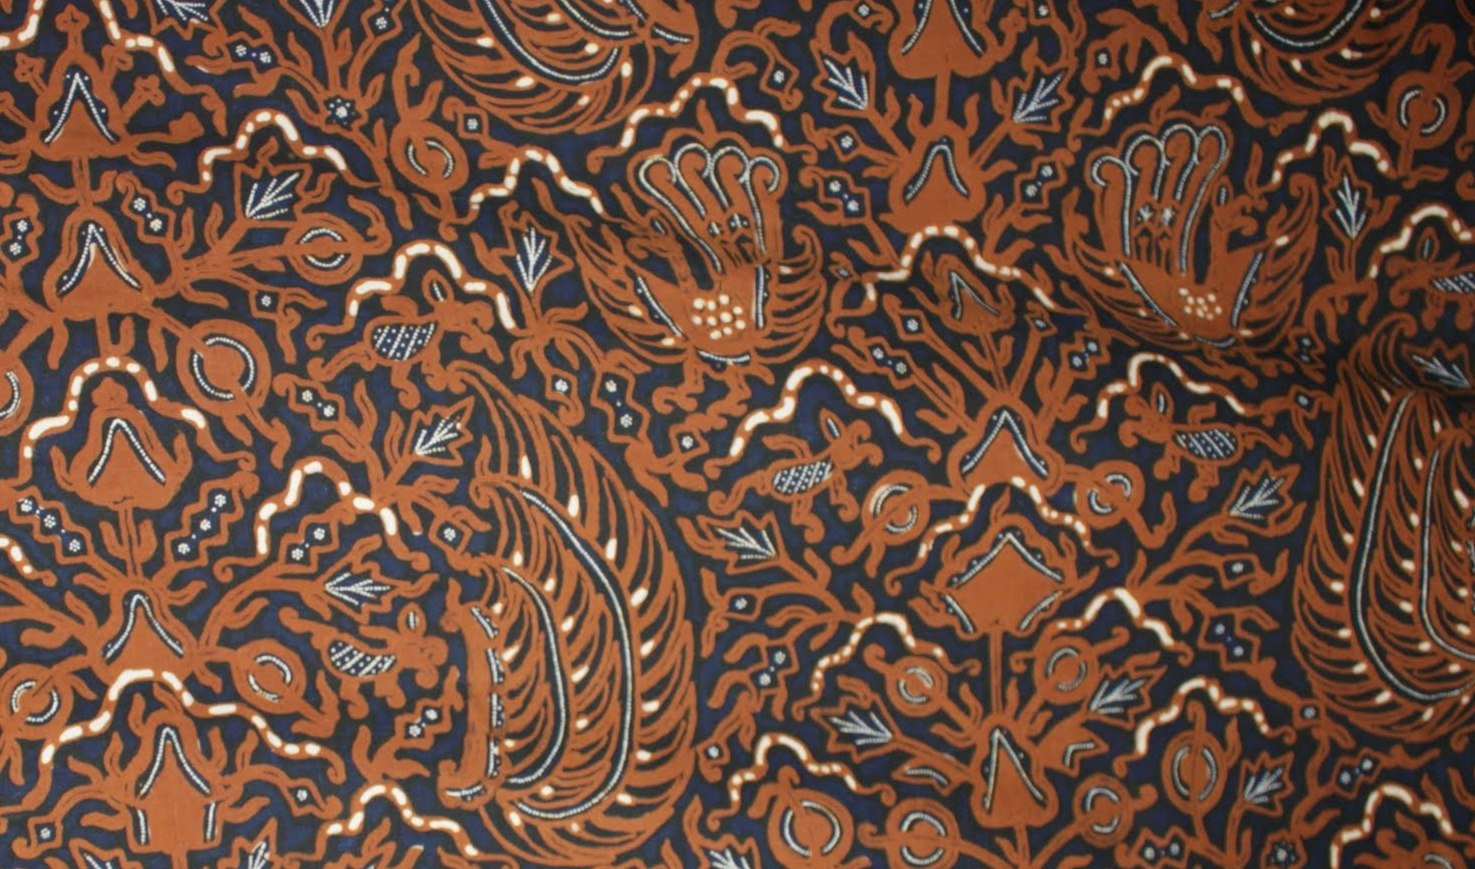 Batik Designs Patterns The forbidden designs in batik yogyakarta